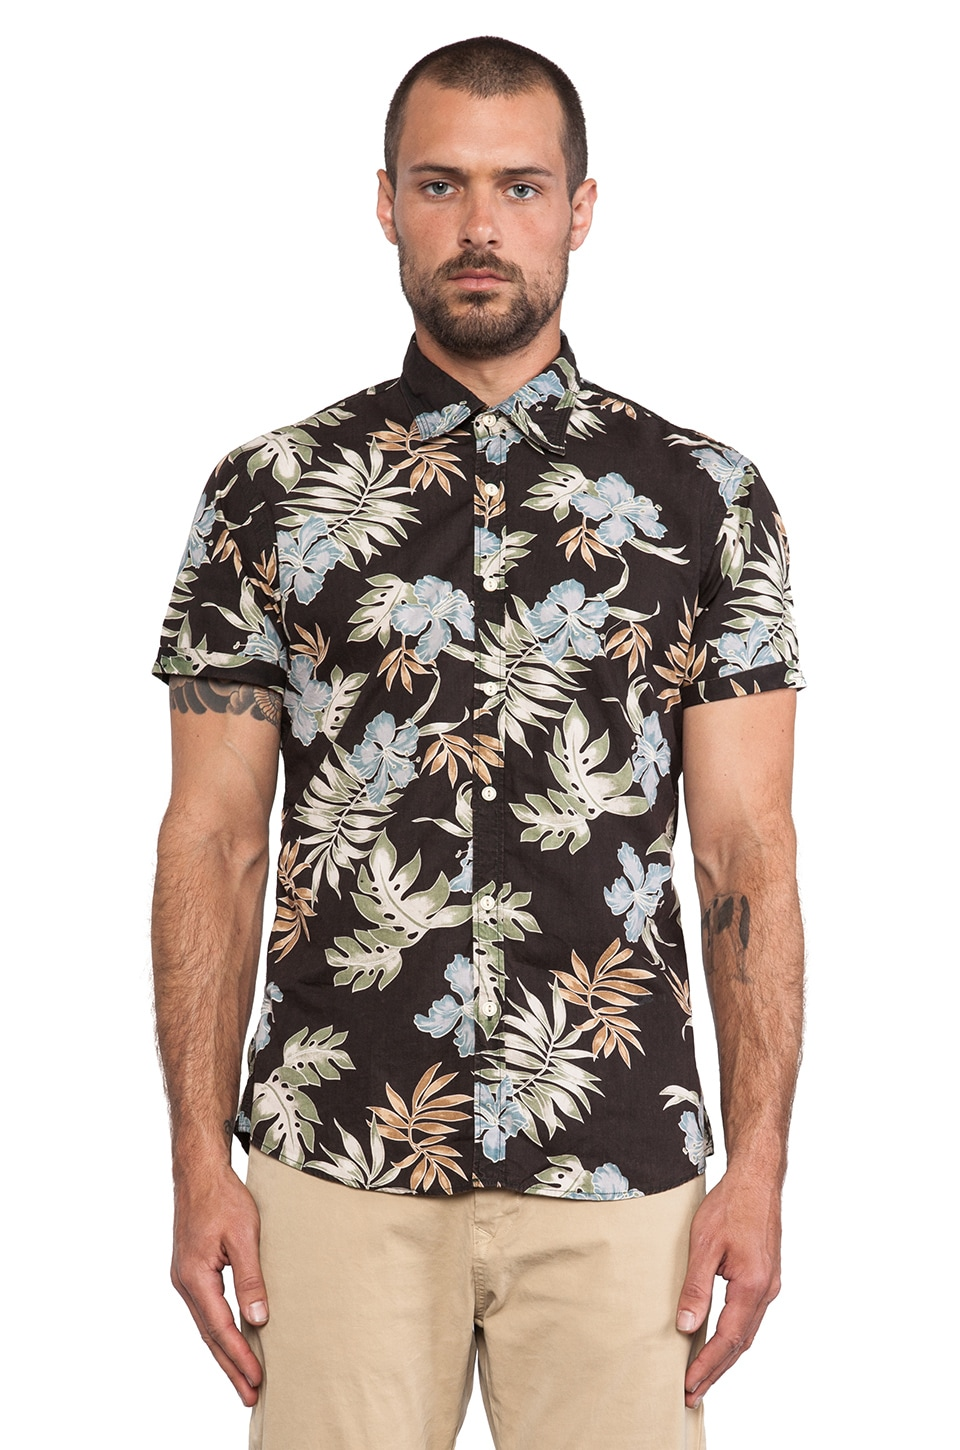 Scotch & Soda Allover Print Shirt in Black & Multi